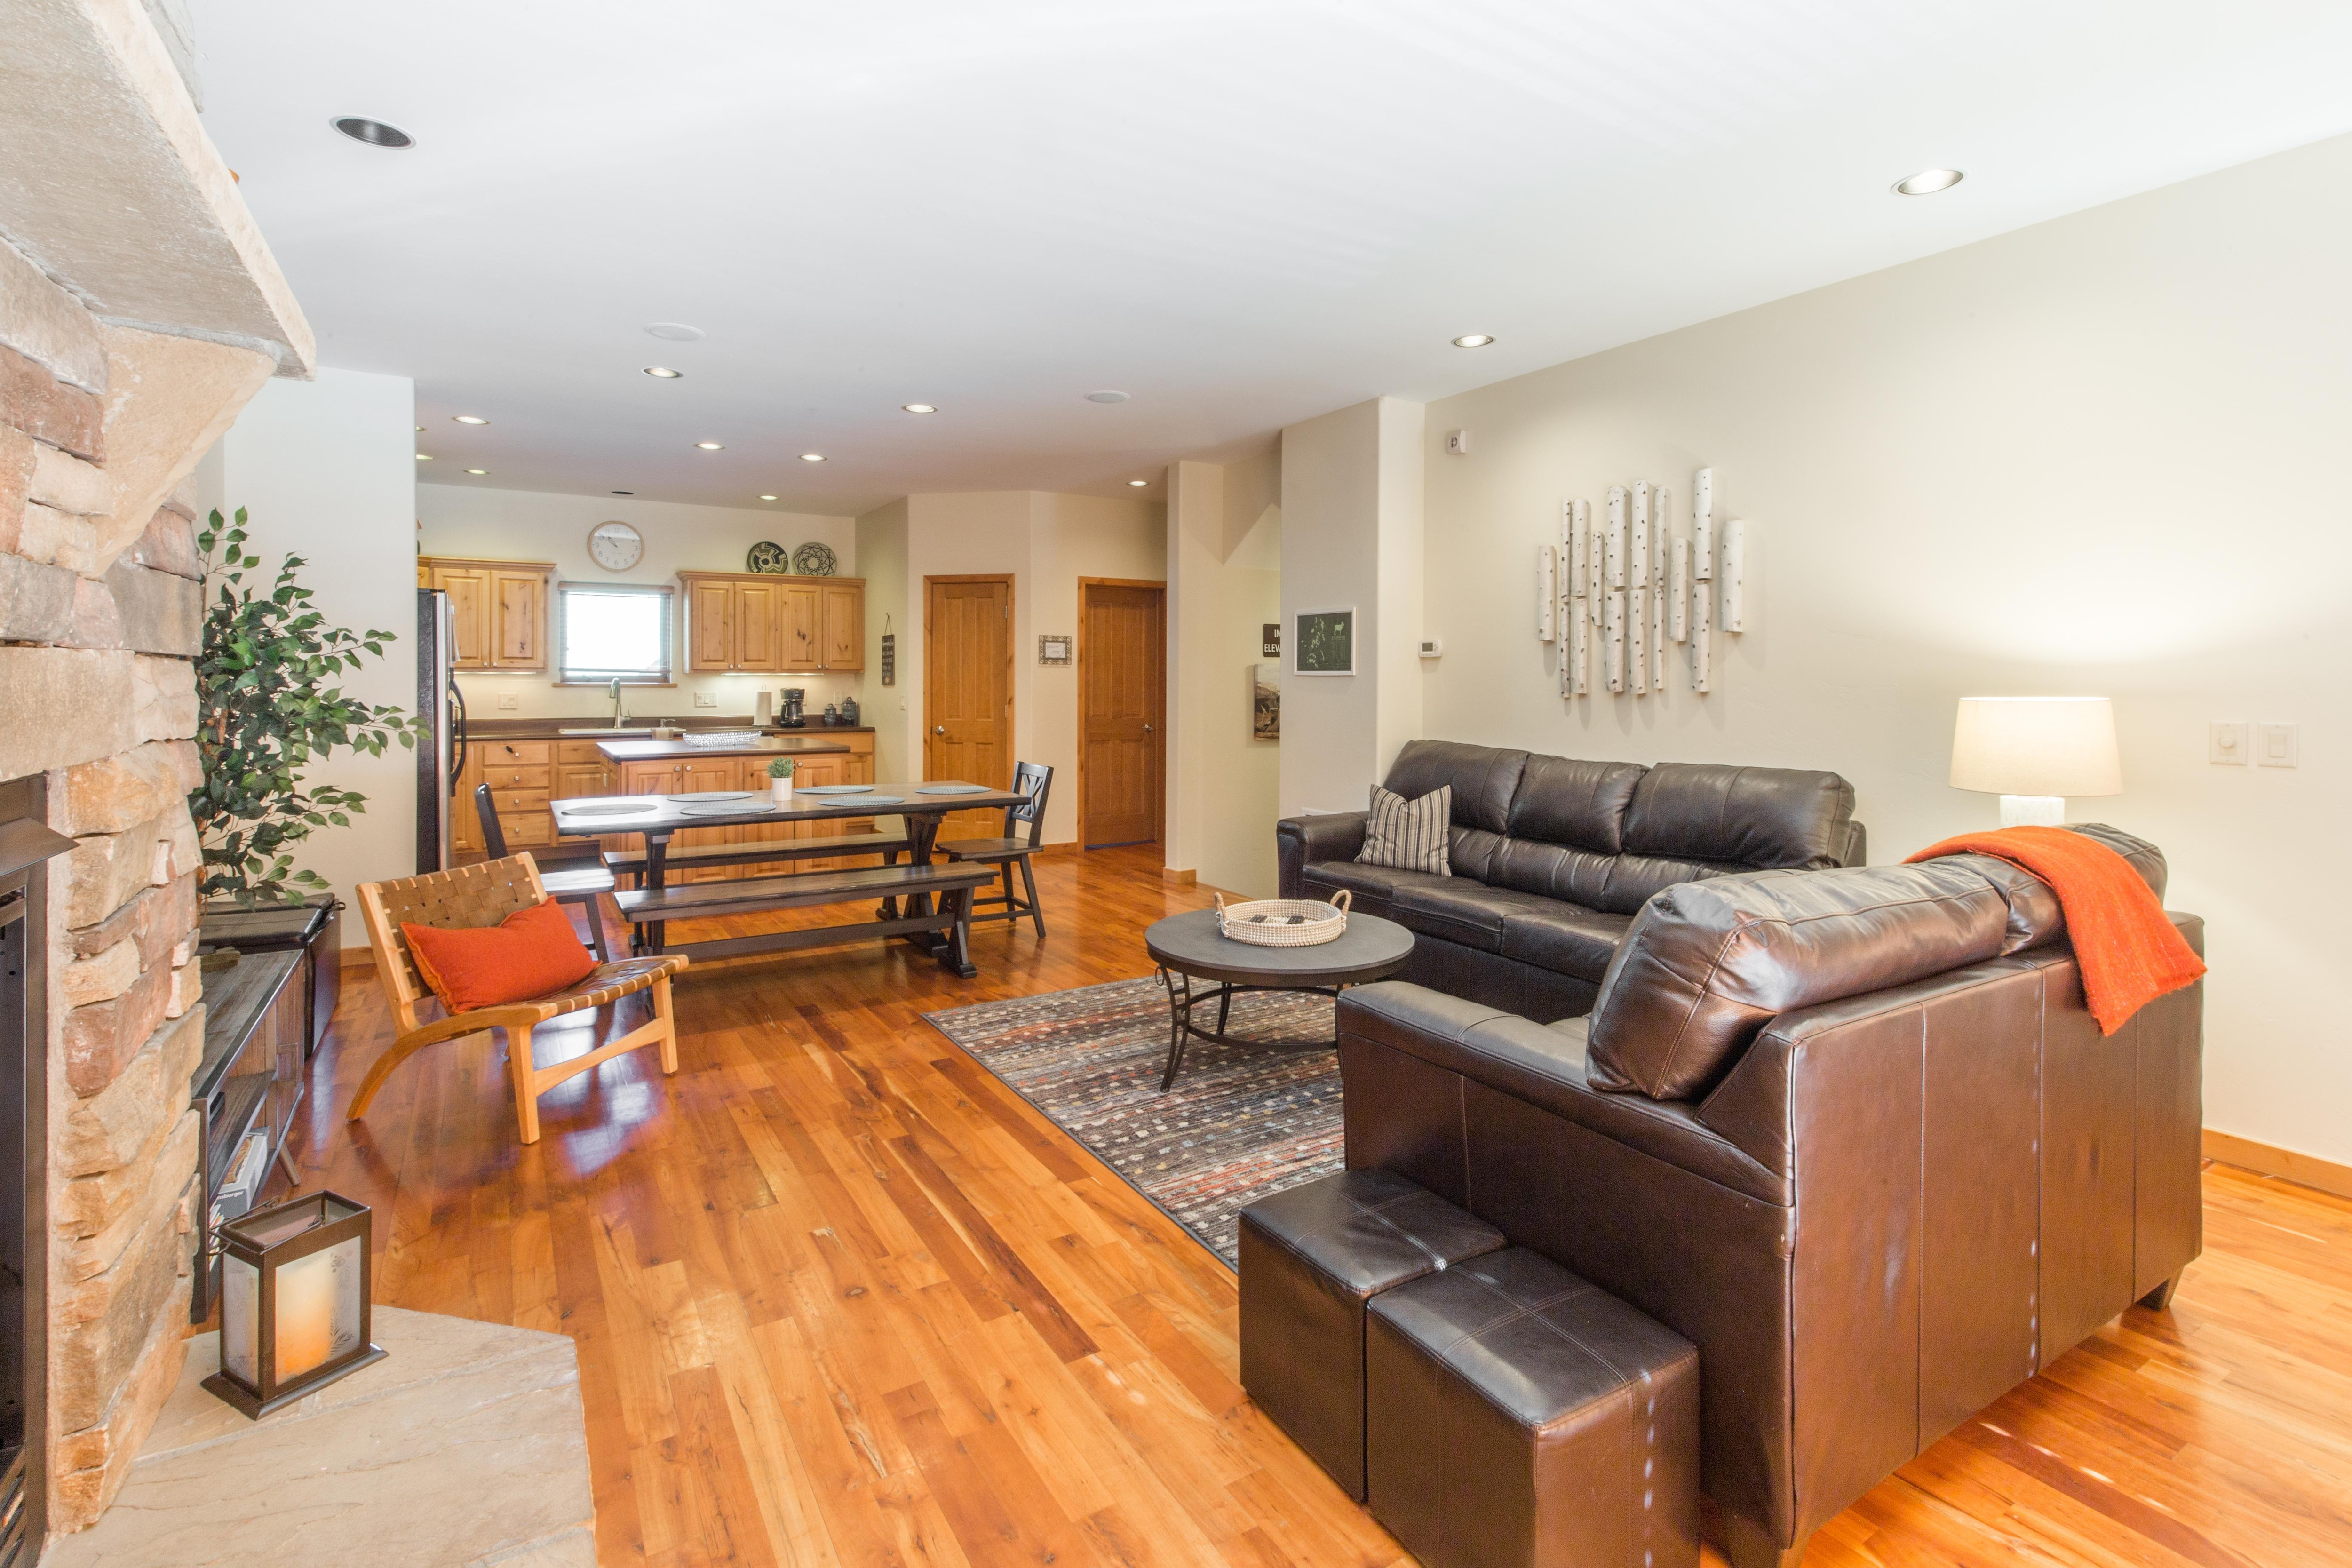 Newly Furnished - Upscale Townhome - Minutes to Downtown Ouray